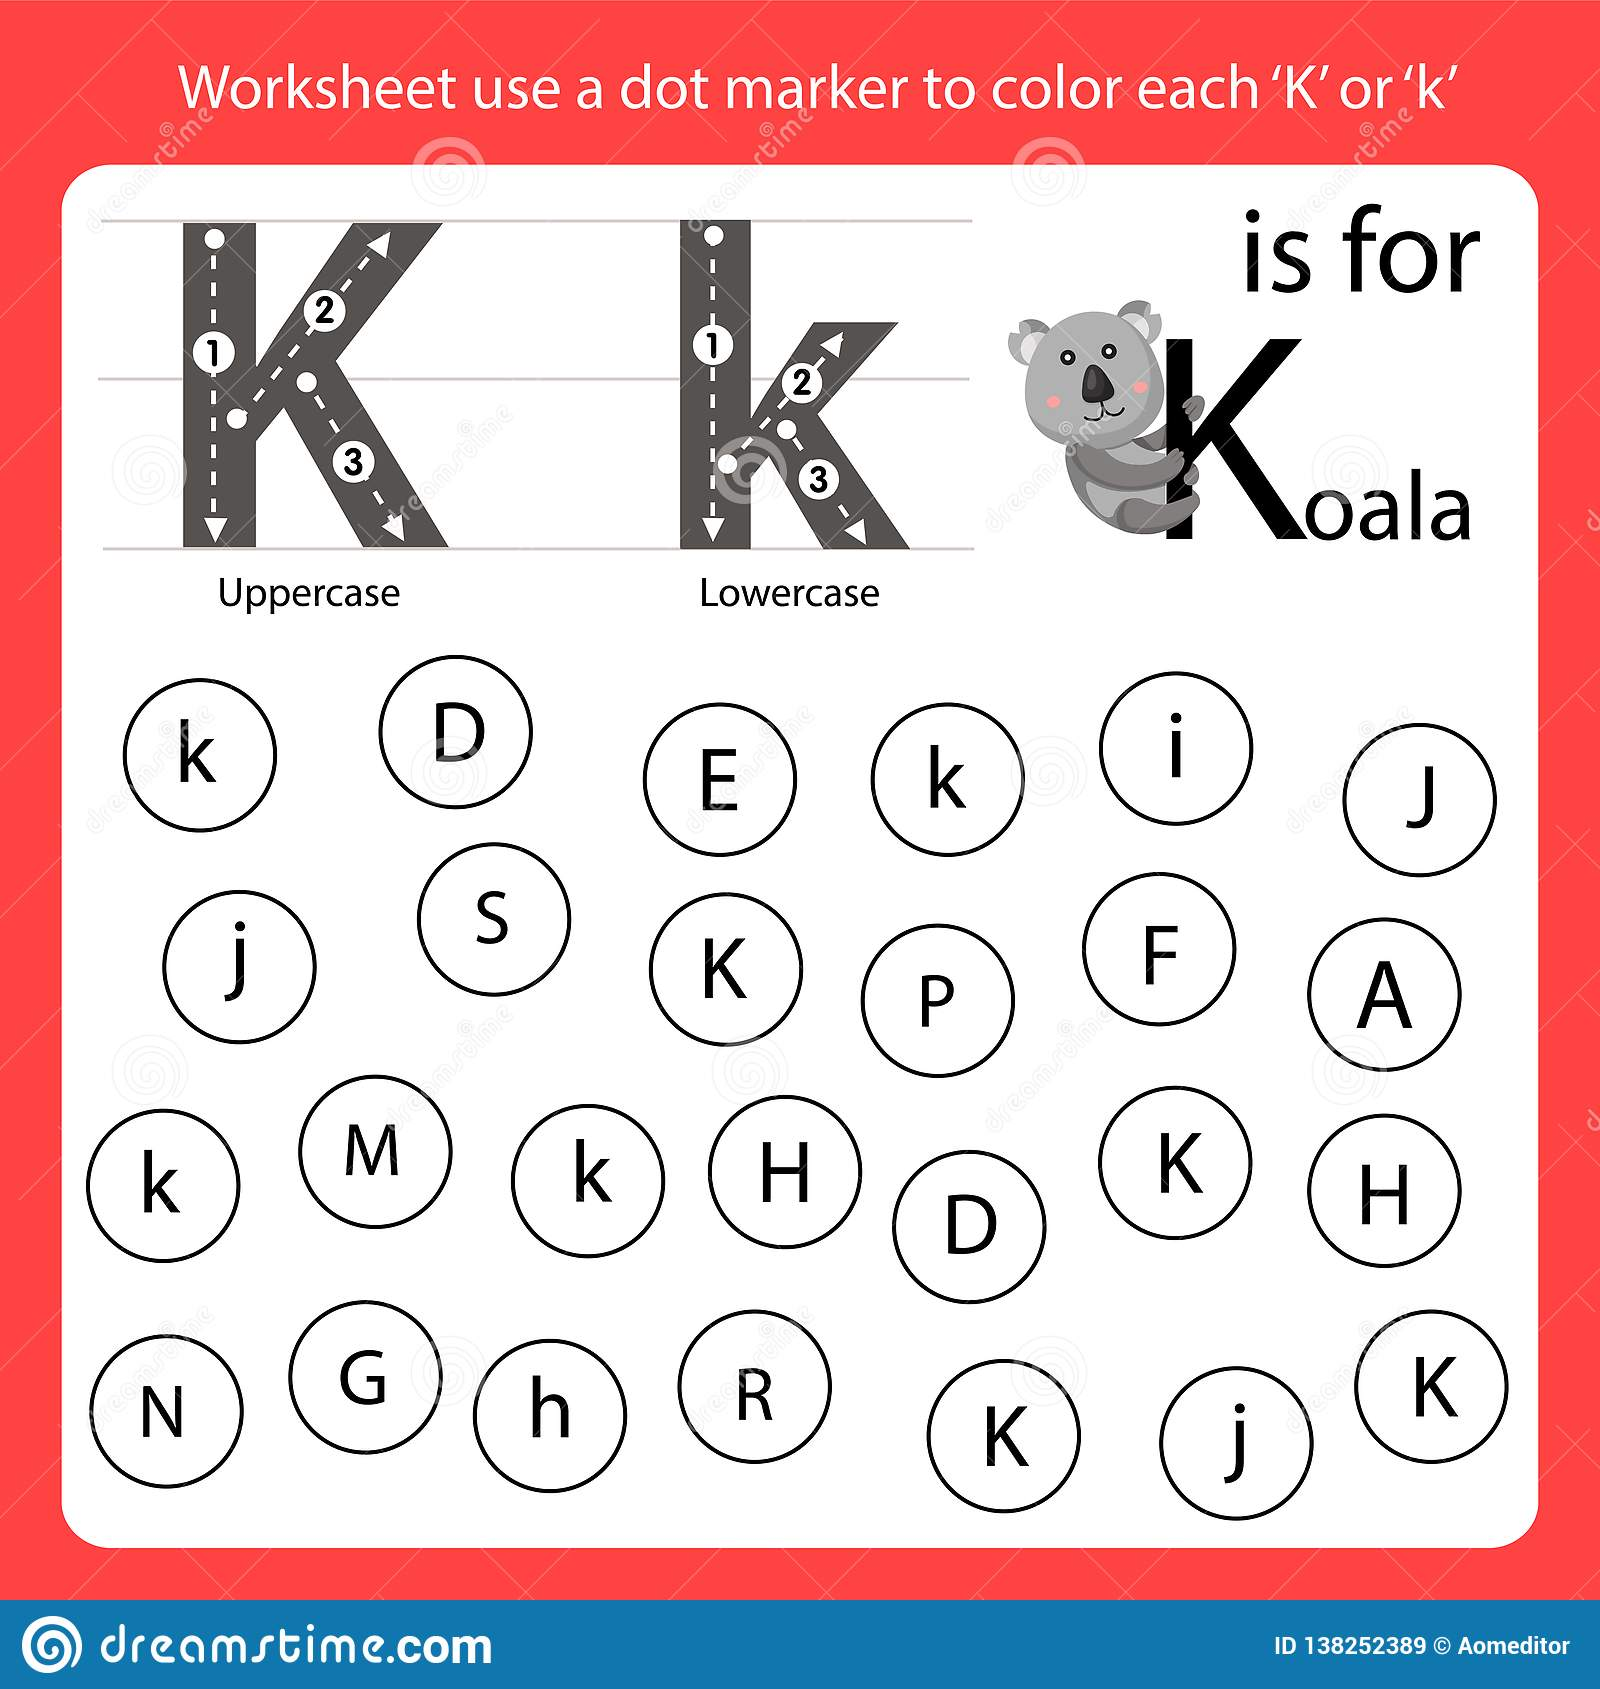 Find The Letter Worksheet Use A Dot Marker To Color Each K